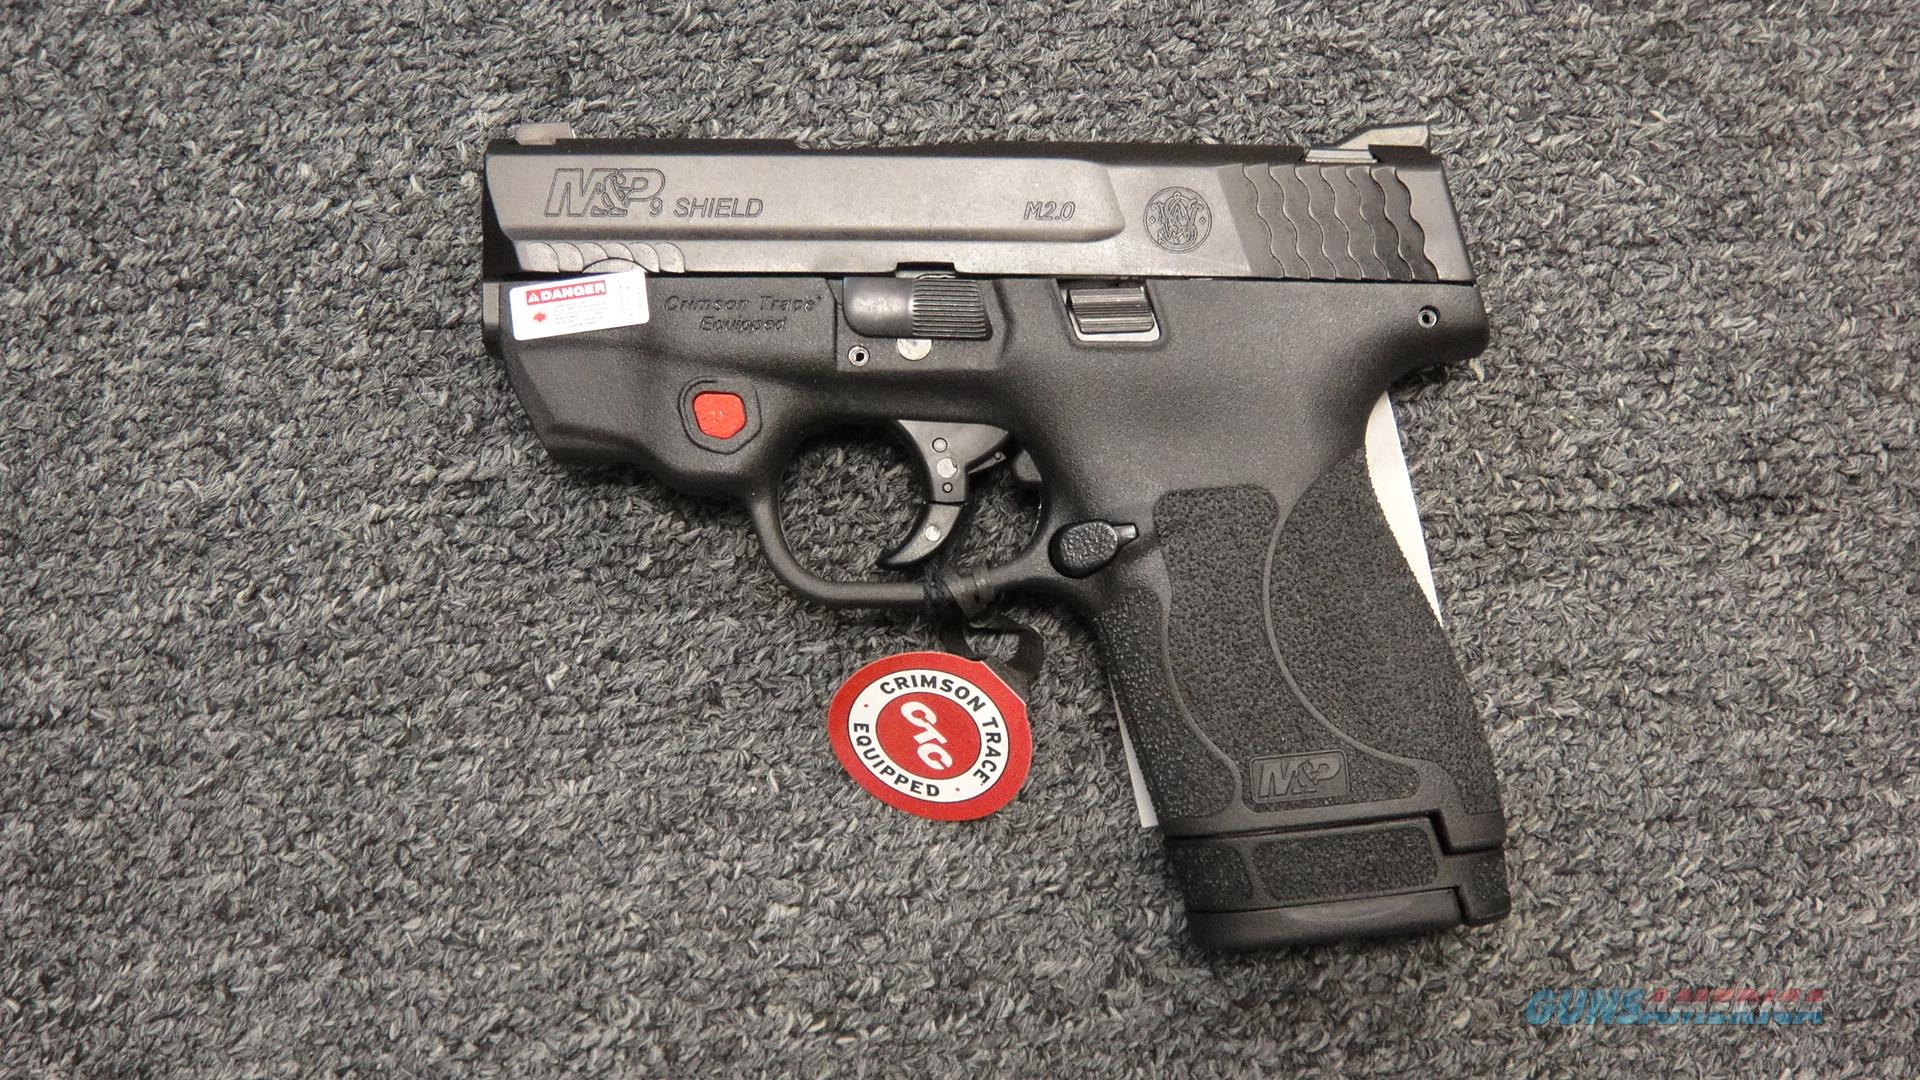 Smith & Wesson M&P9 Shield 2.0 w/ CTC Laser  Guns > Pistols > Smith & Wesson Pistols - Autos > Shield